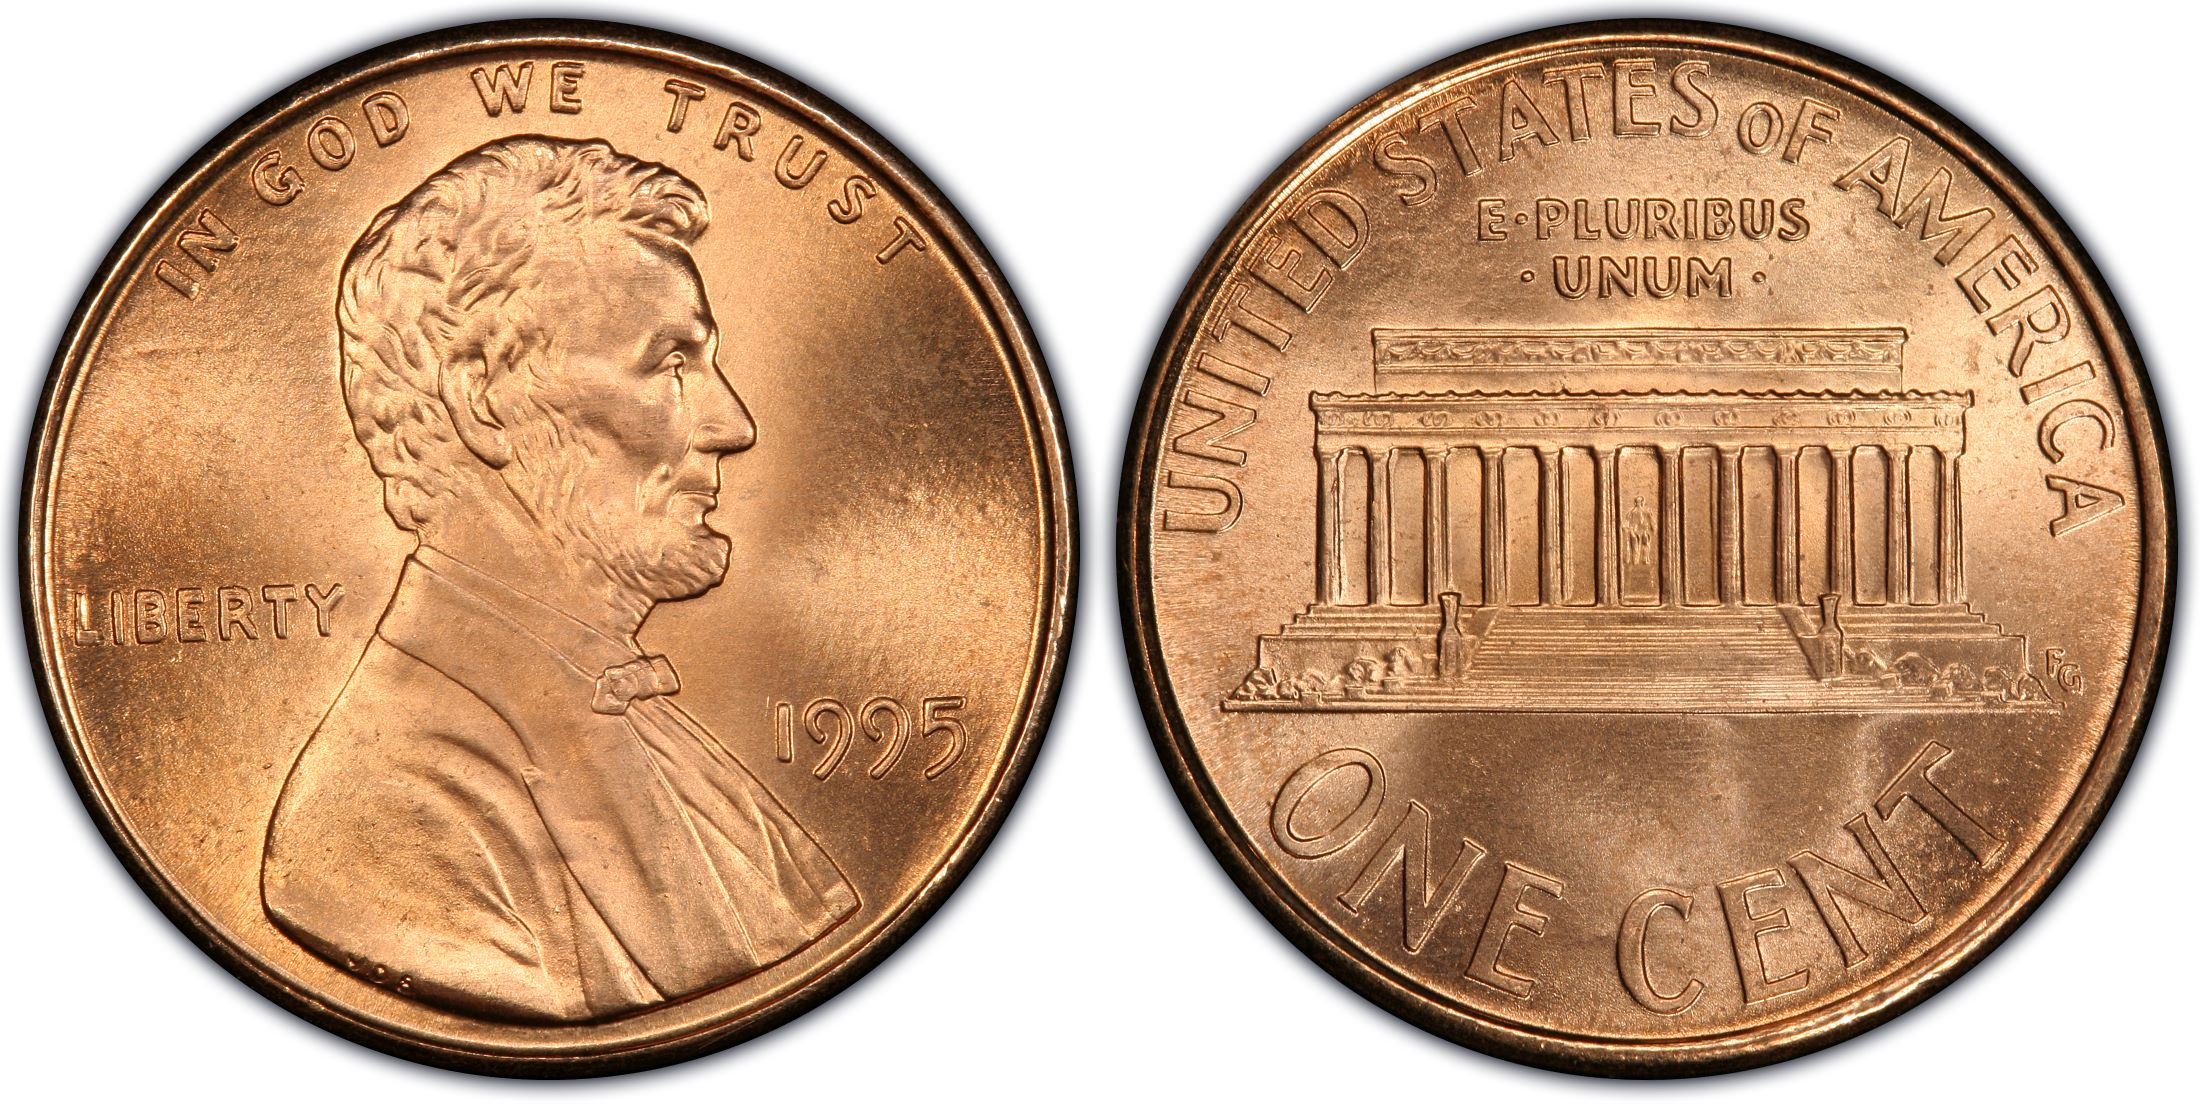 1995 1C Doubled Die Obverse, RD (Regular Strike) - PCGS CoinFacts